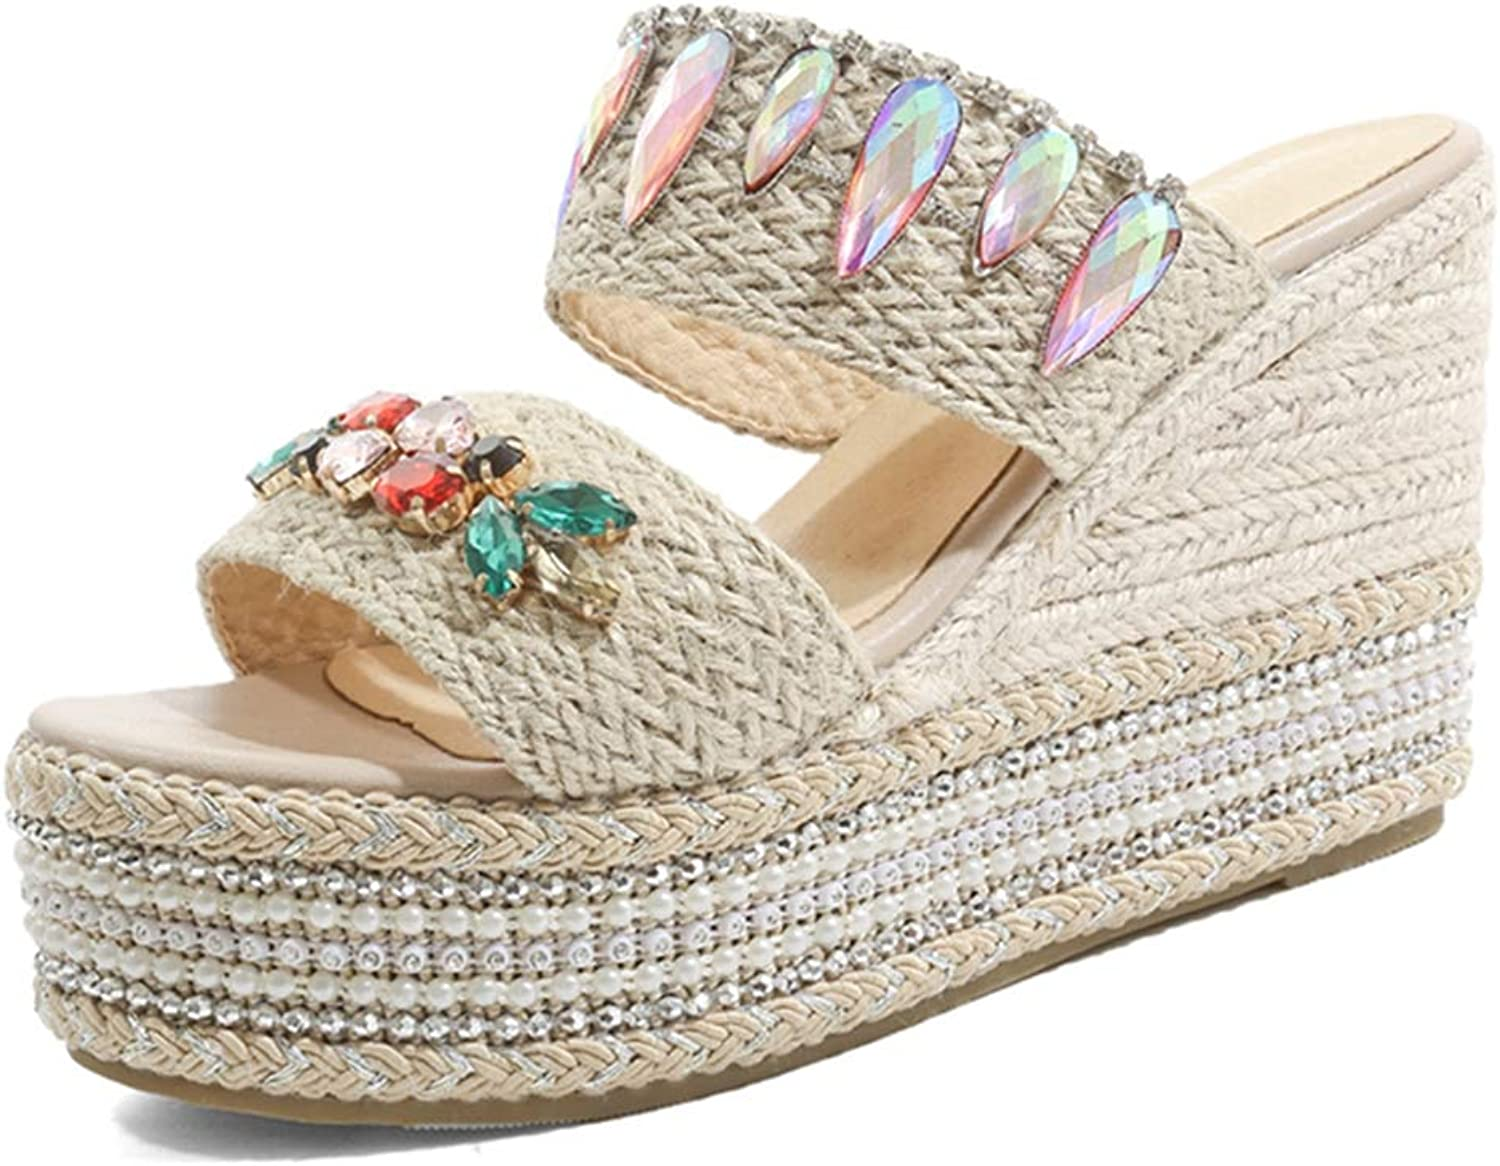 GIY Women's Strappy Crystal Wedges Platform Slides Sandals Summer Beach Open Toe Slip on Roman High Heels Slipper shoes